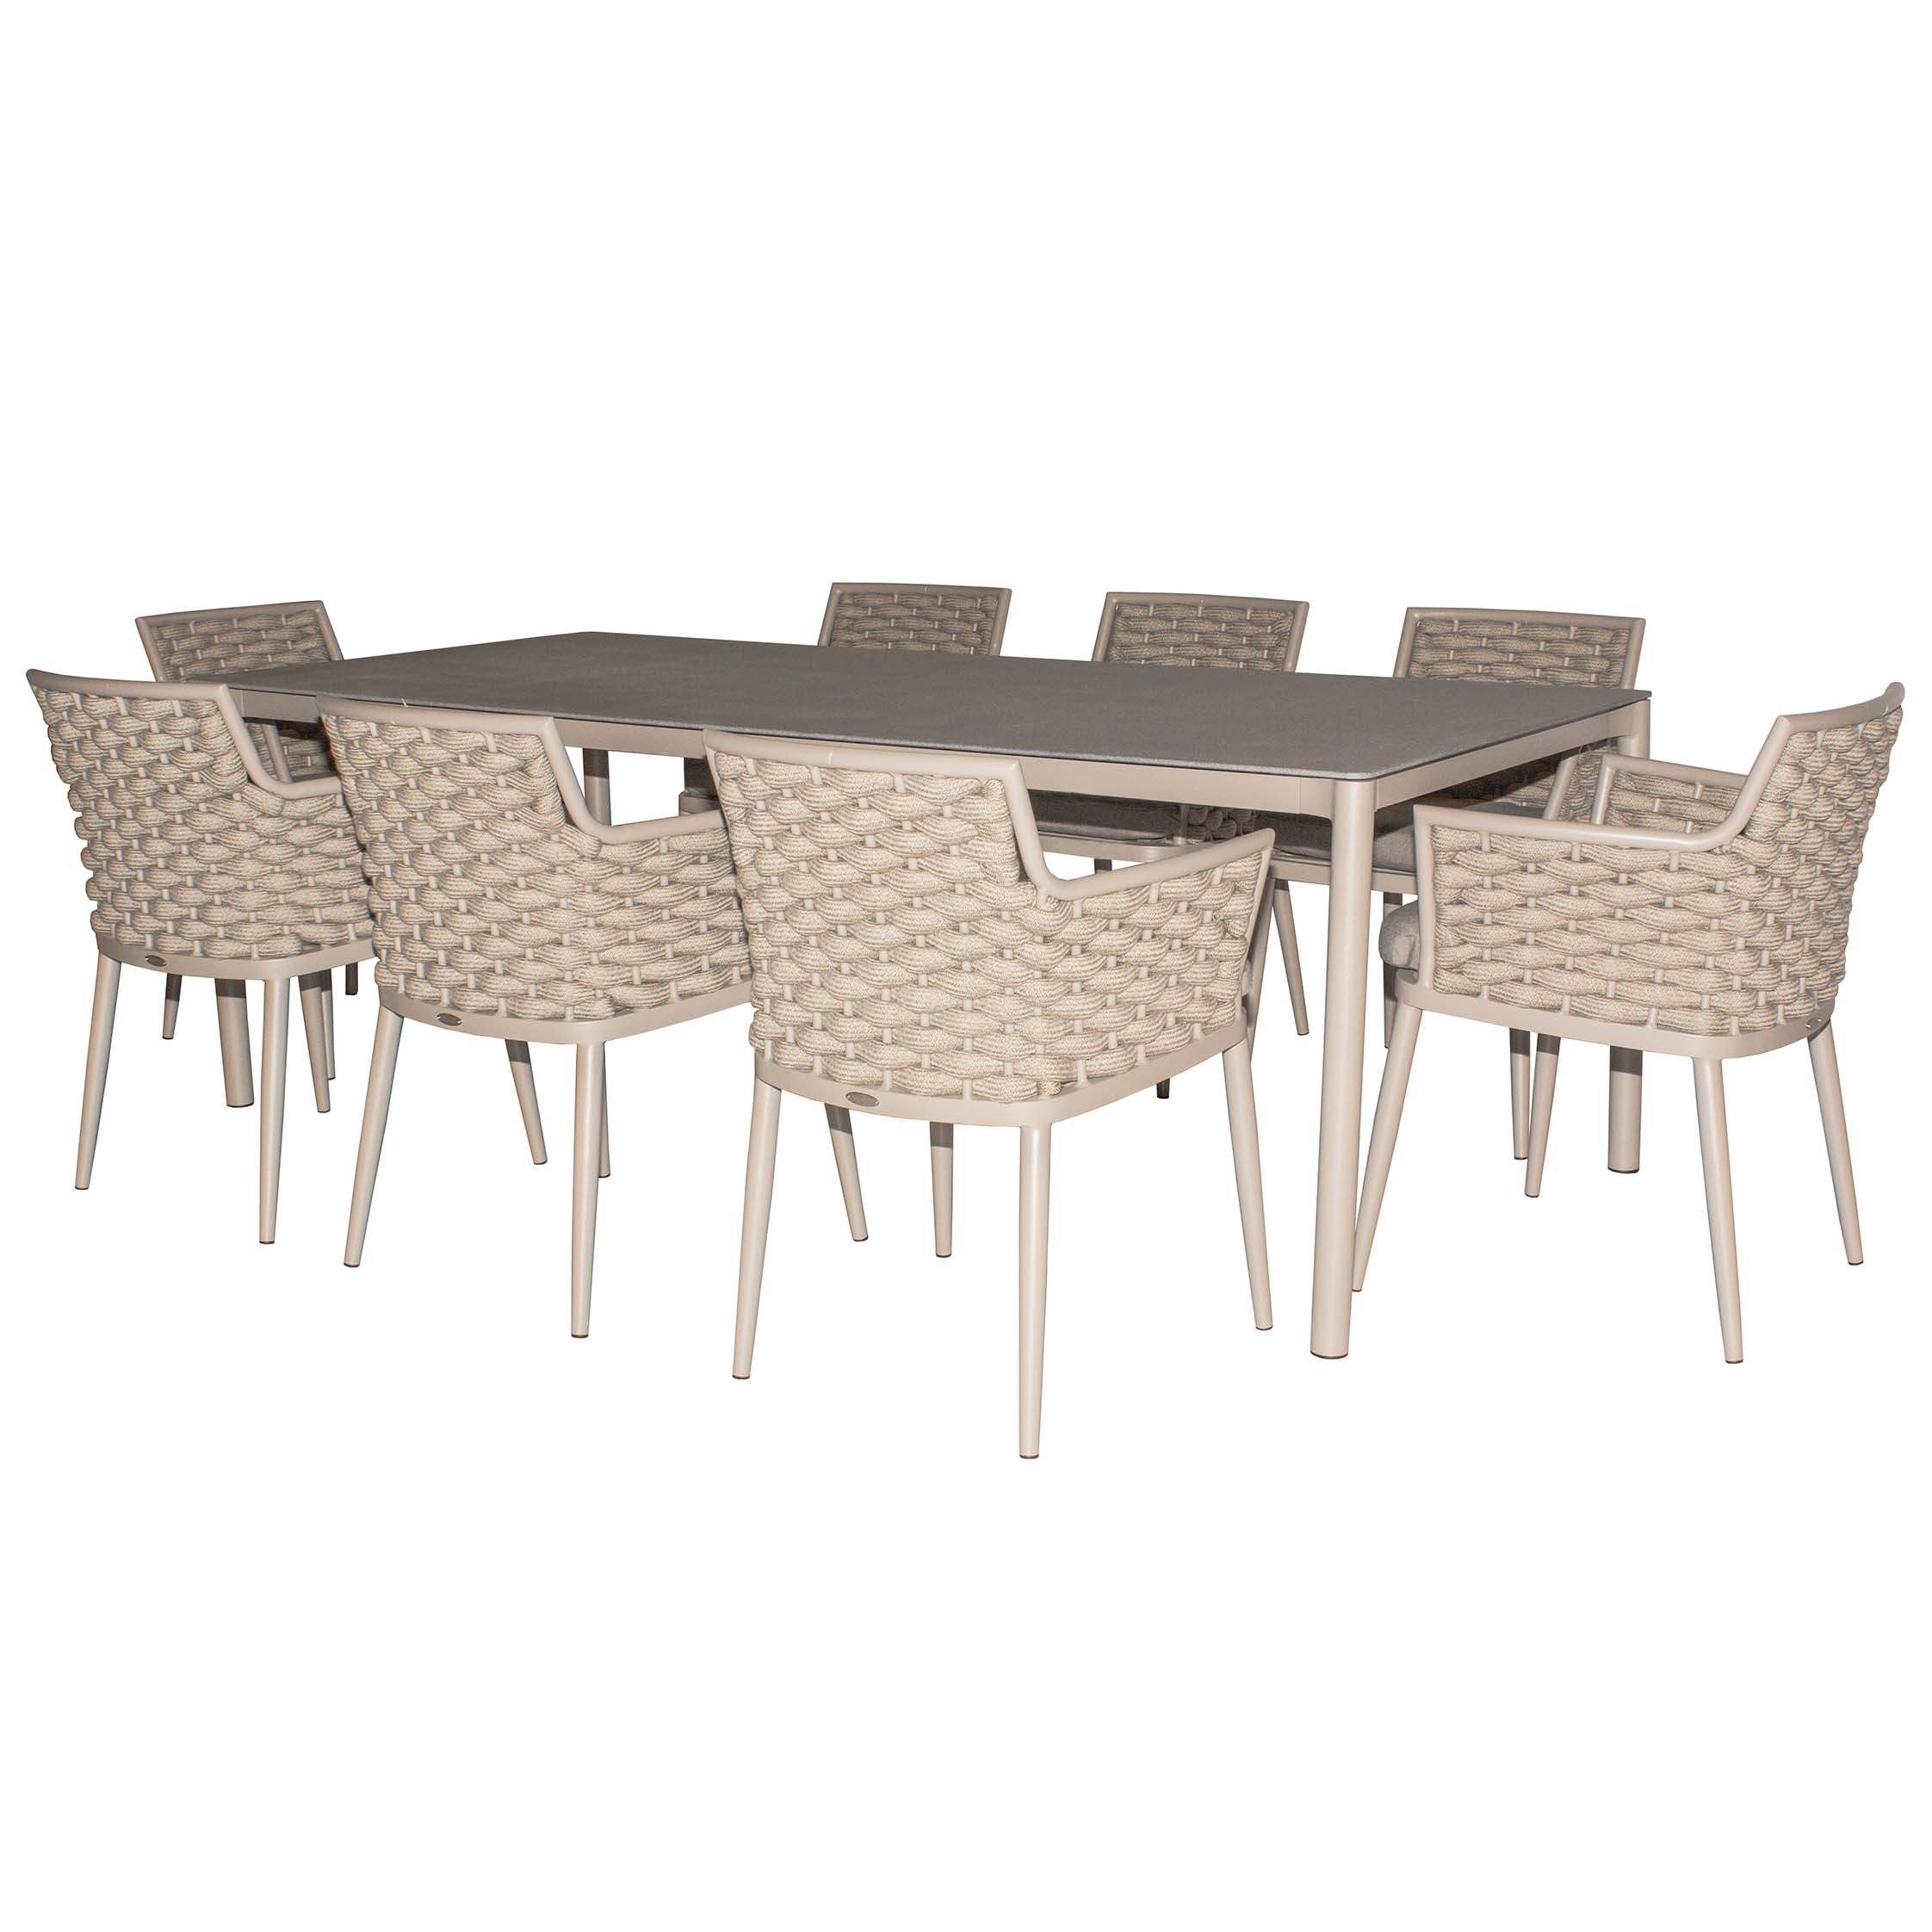 Leon Dining Set 8 Seater | Patio Warehouse Within Latest Leon Dining Tables (Image 7 of 20)